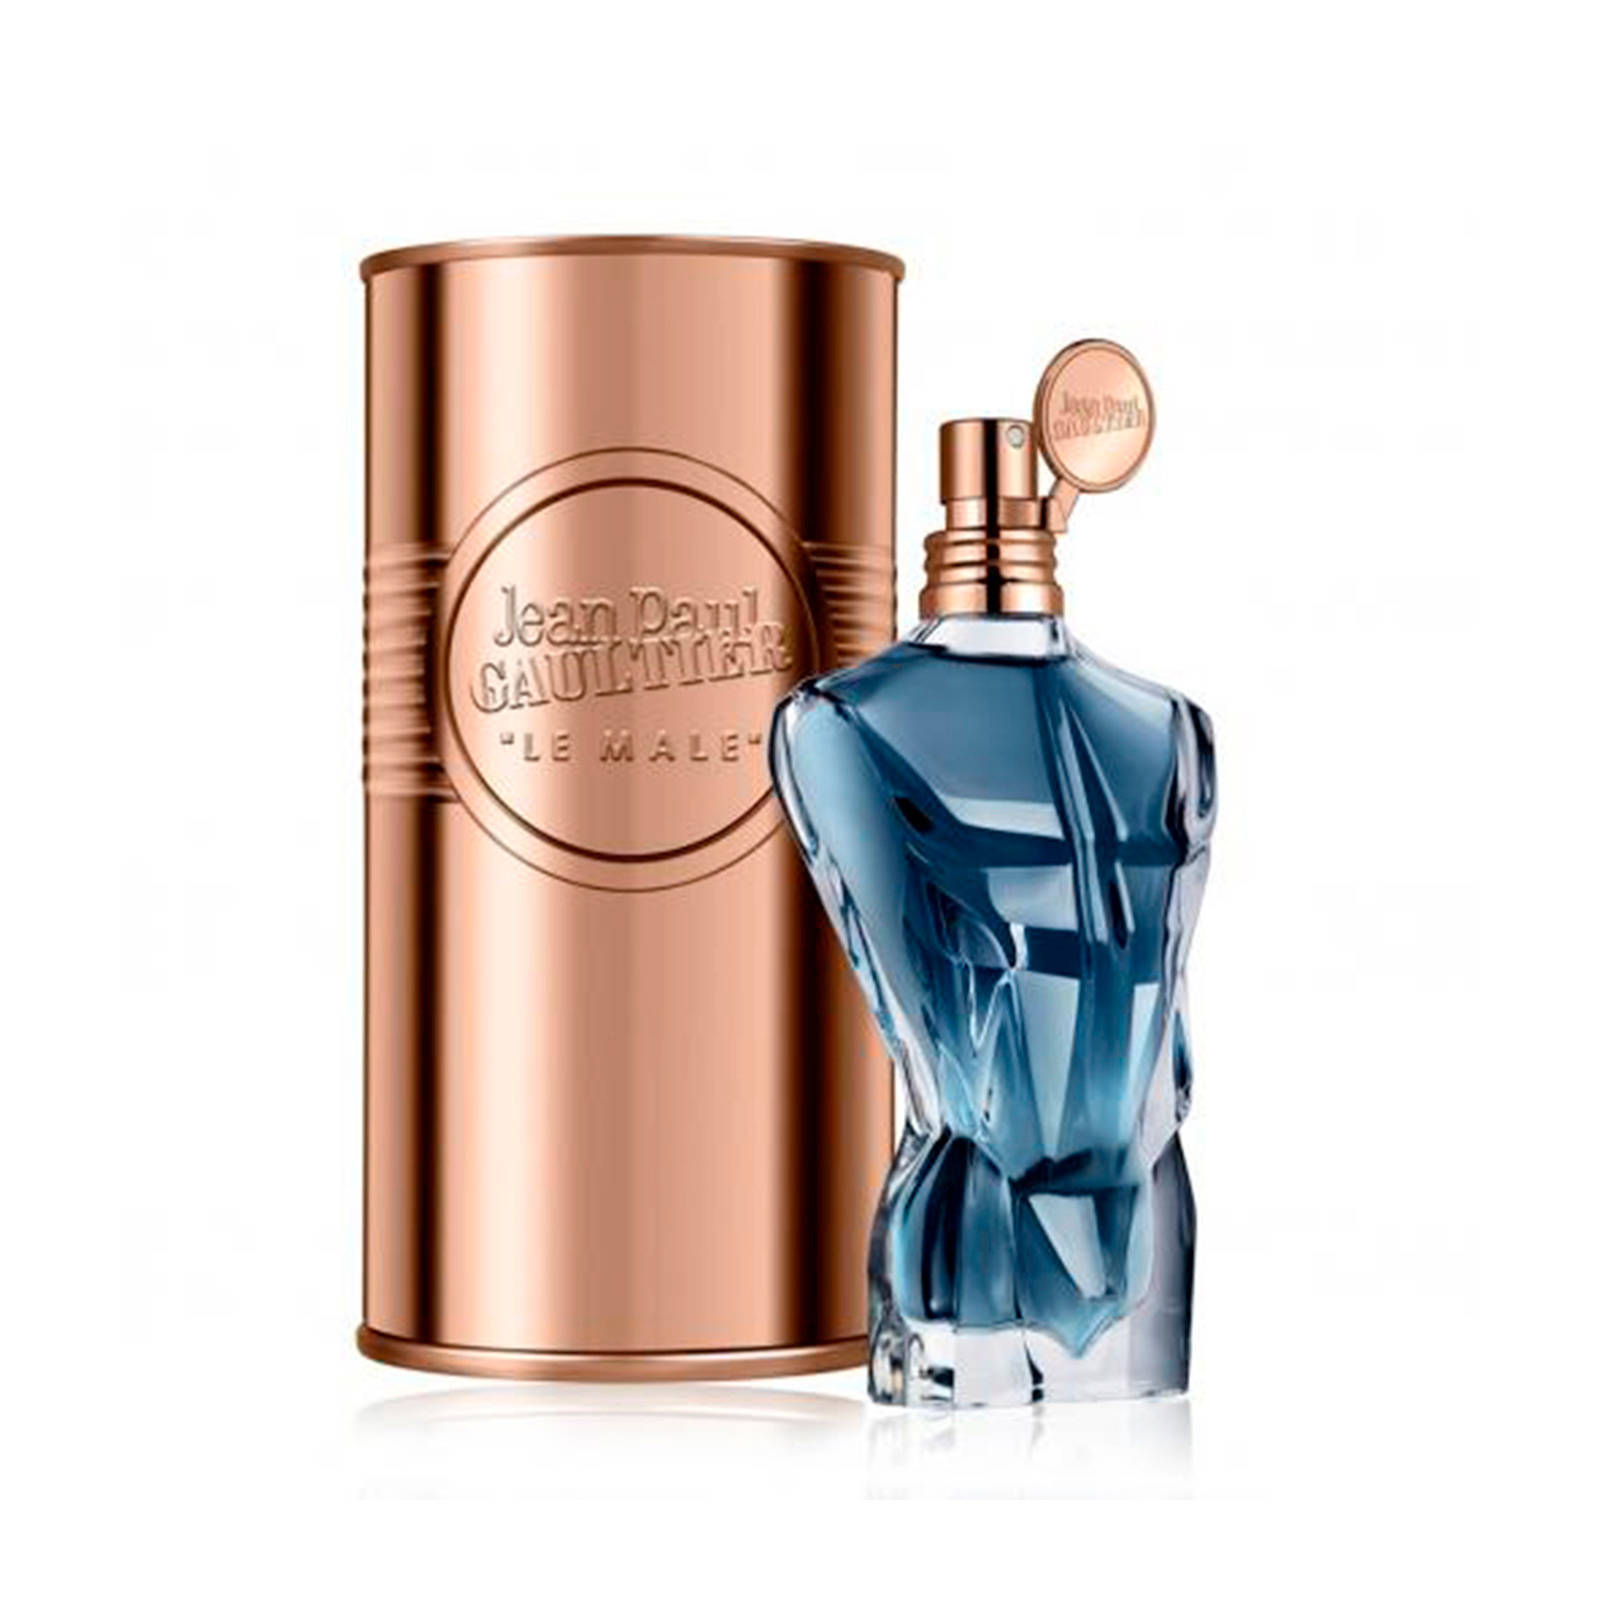 Eau Essence De Ml Parfum Le 75 Male NwyvmnO80